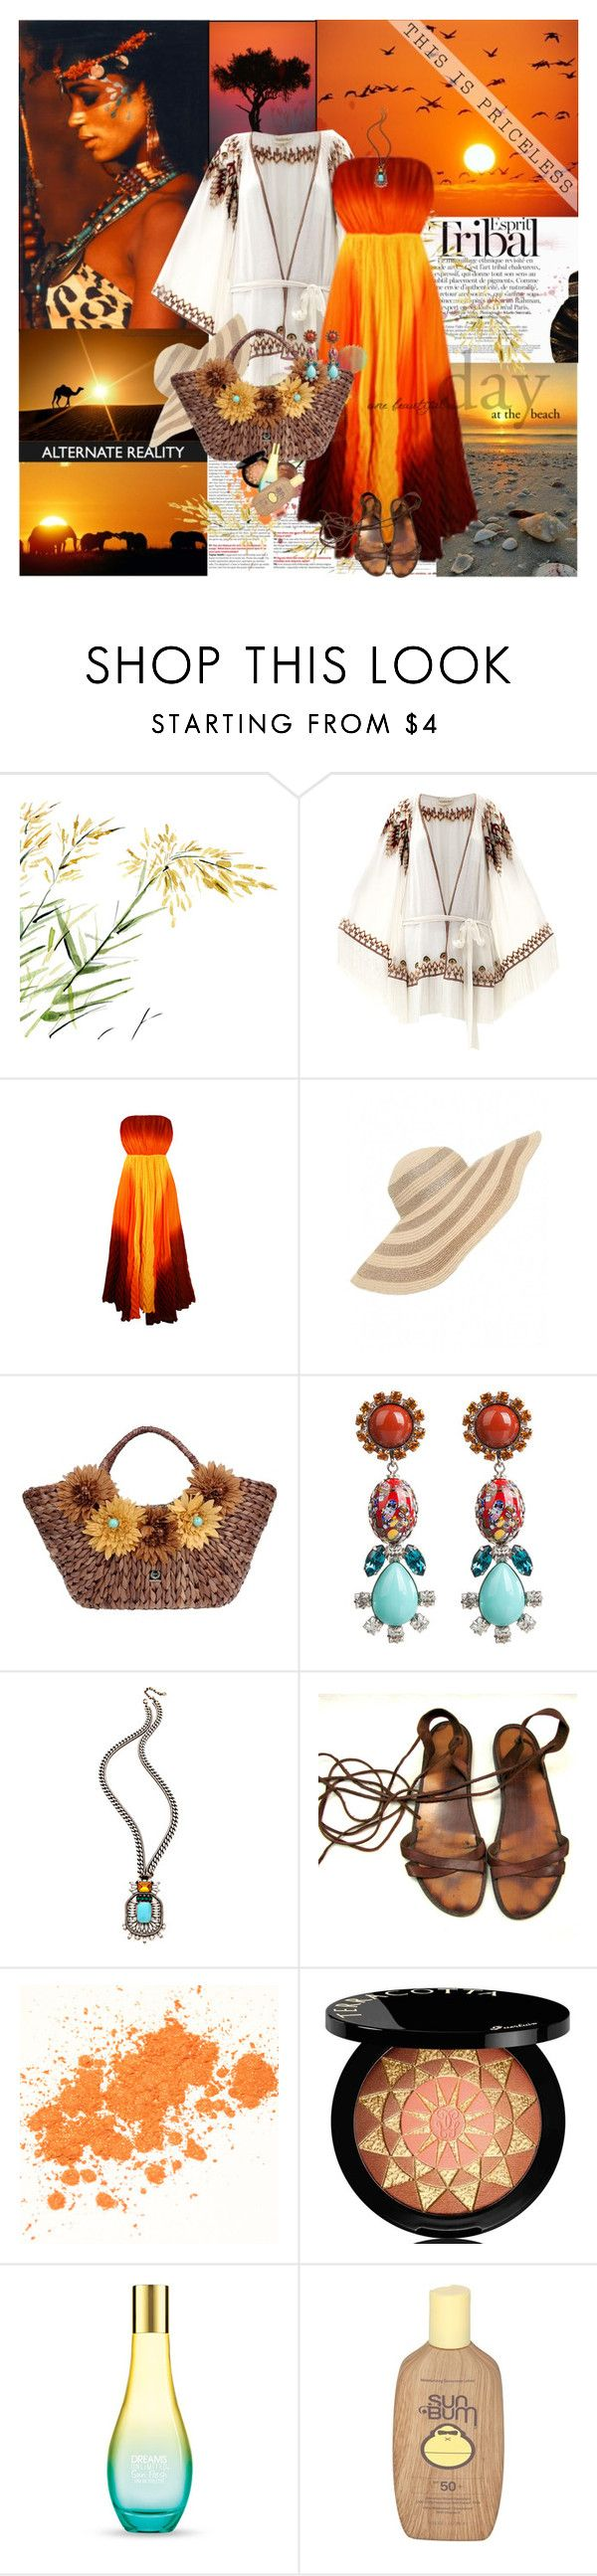 """""""Esprit Tribal"""" by lusy-lusy ❤ liked on Polyvore featuring ESPRIT, National Geographic Home, Talitha, Alice + Olivia, Helene Berman, GIANMARCO VENTURI, DANNIJO, Guerlain, The Body Shop and Sun Bum"""